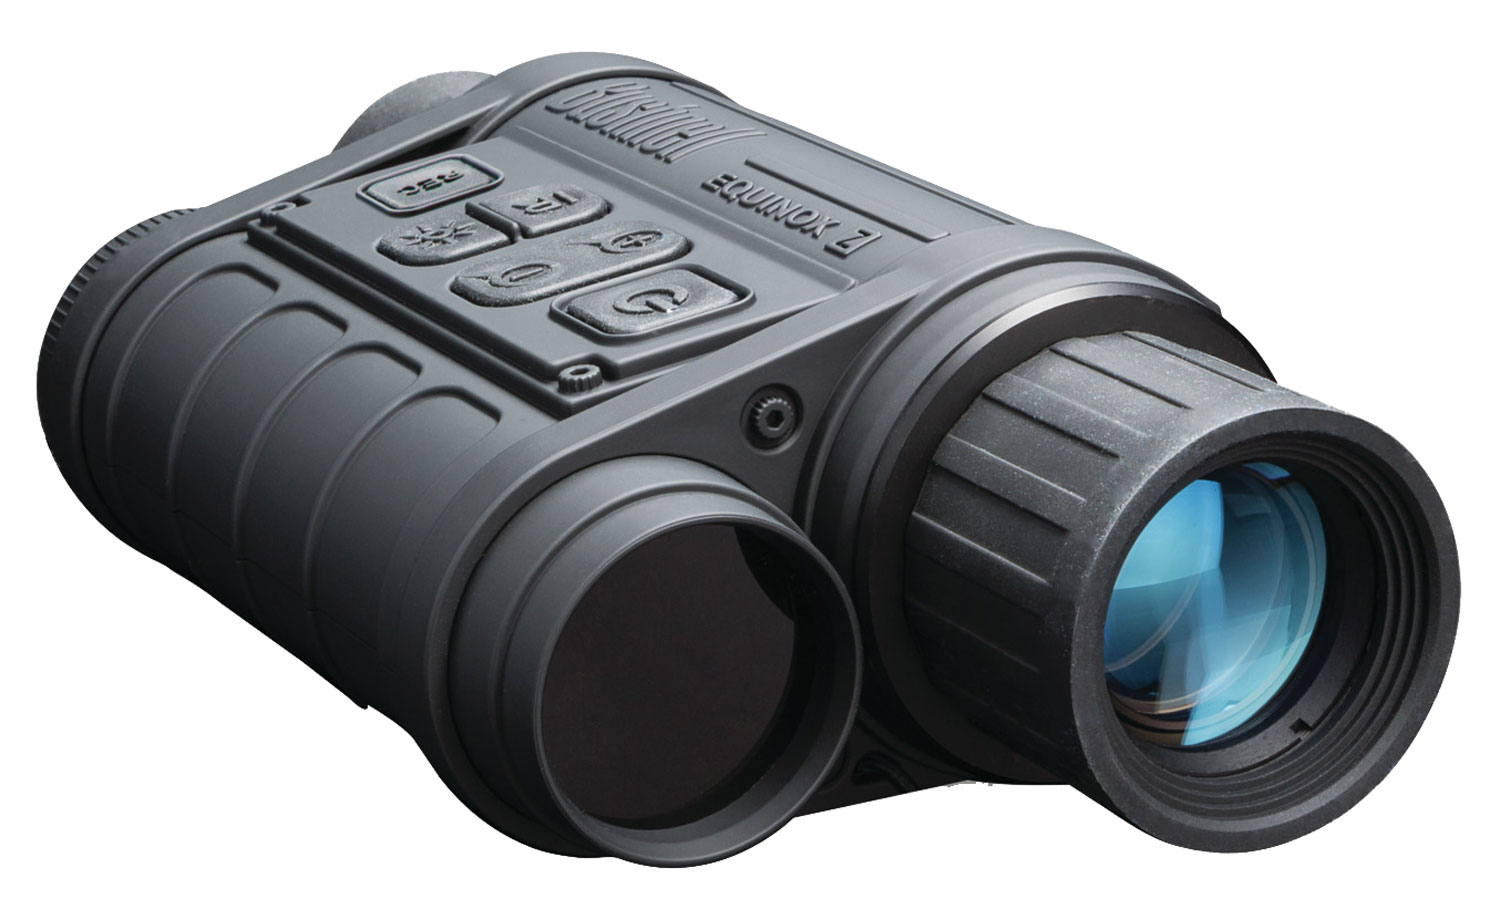 Bushnell 260250 Equinox Z   Night Vision Monocular 6x 50mm 20.5 ft @ 100 yds FOV